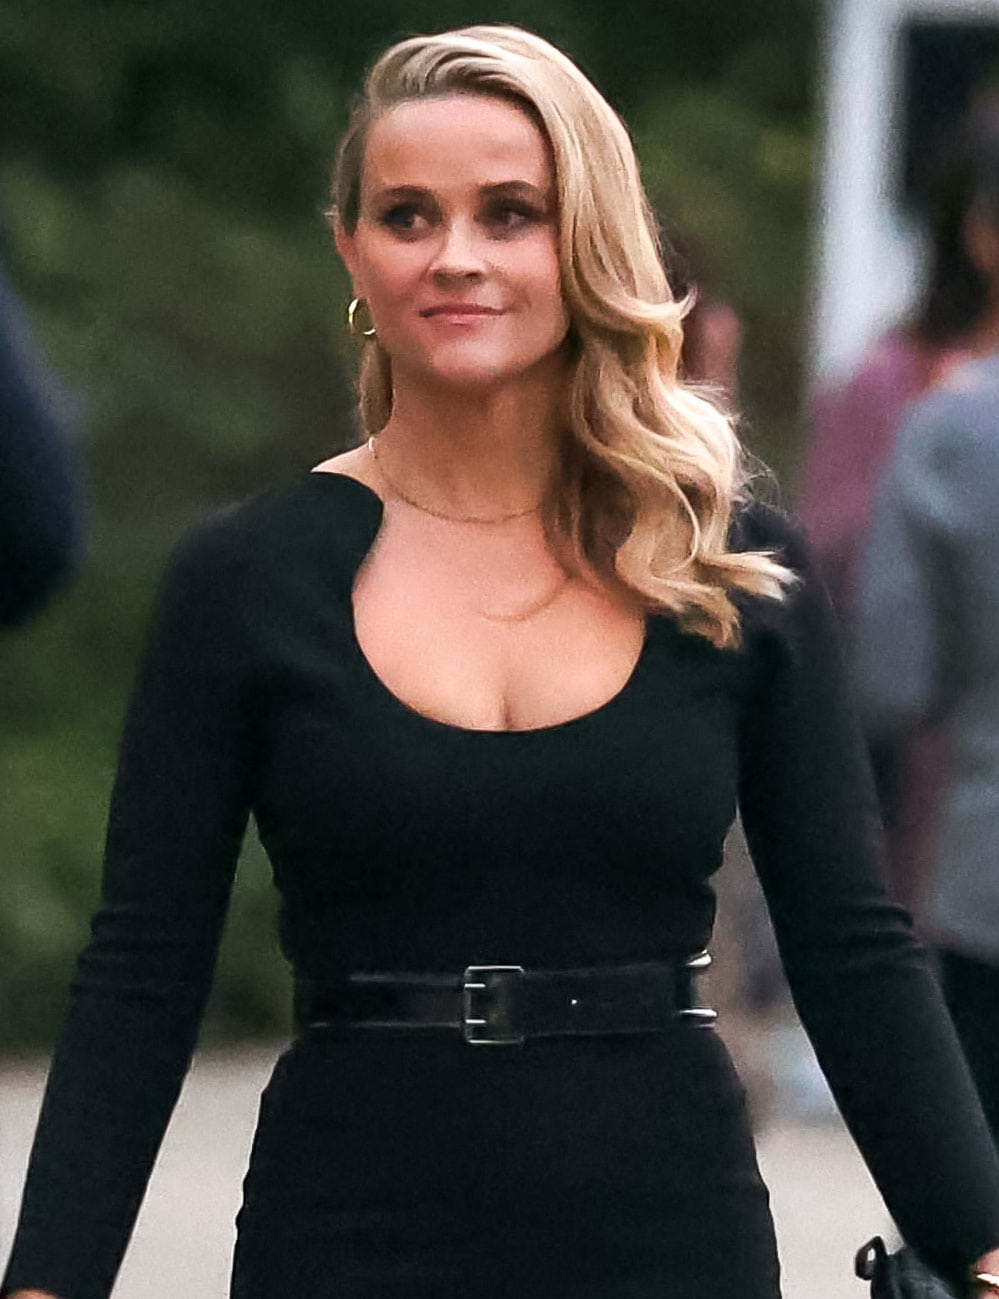 Reese Witherspoon wears neutral makeup and styles her hair in Old Hollywood curls with a deep side parting